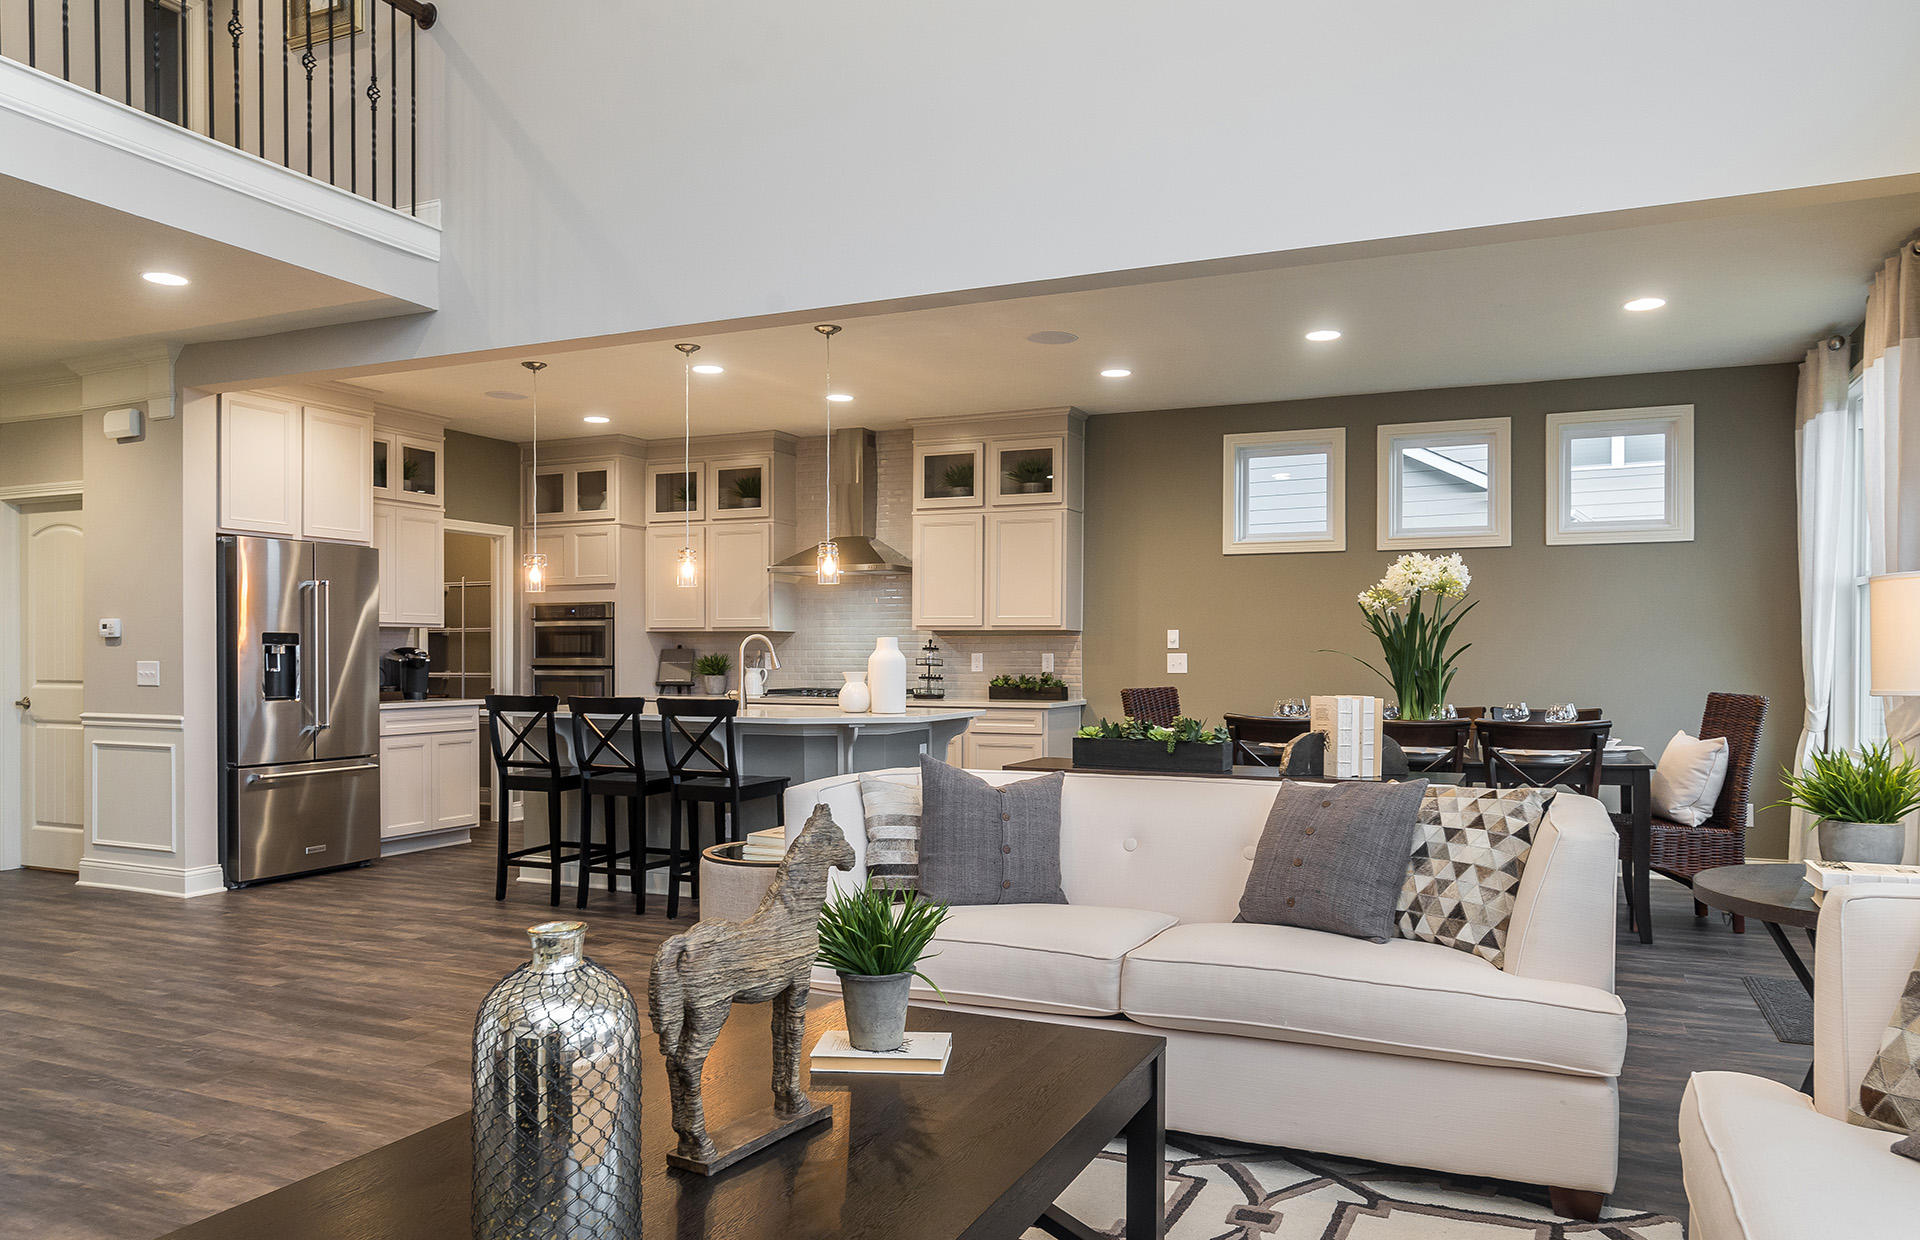 Bear Creek by Pulte Homes image 1